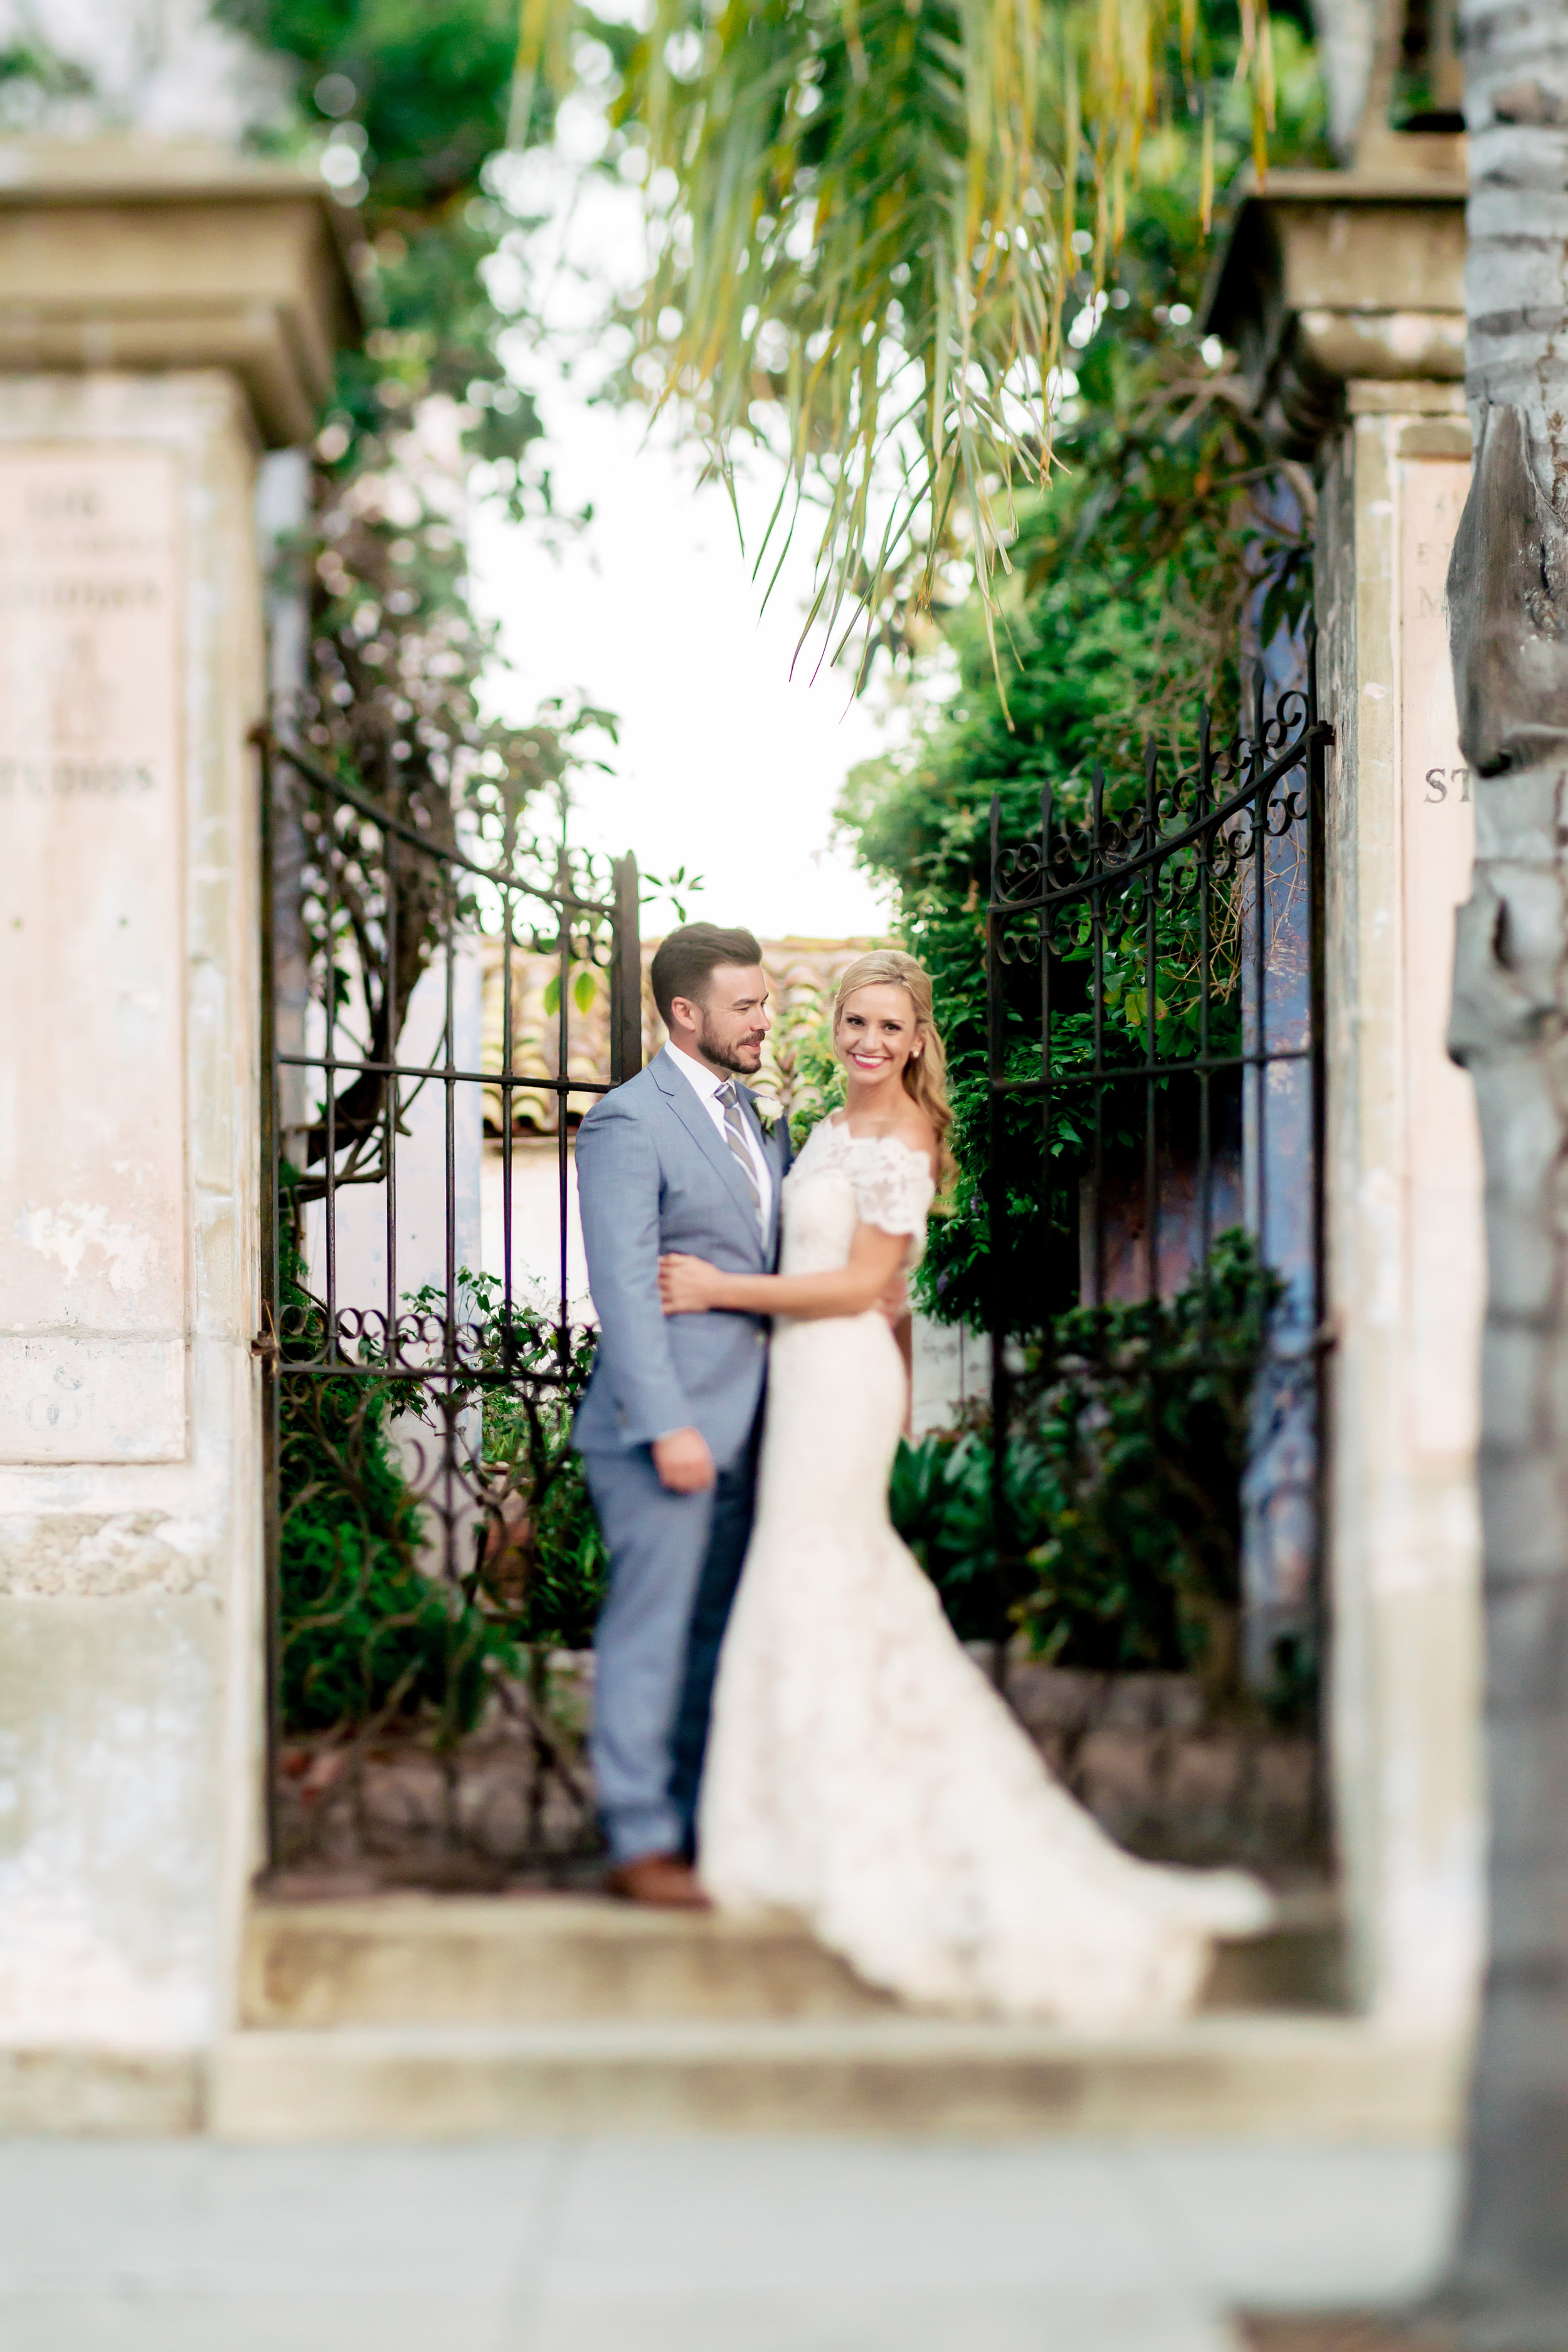 www.santabarbarawedding.com | Rewind Photography | Events by M and M | Santa Barbara Historical Museum | Bride and Groom